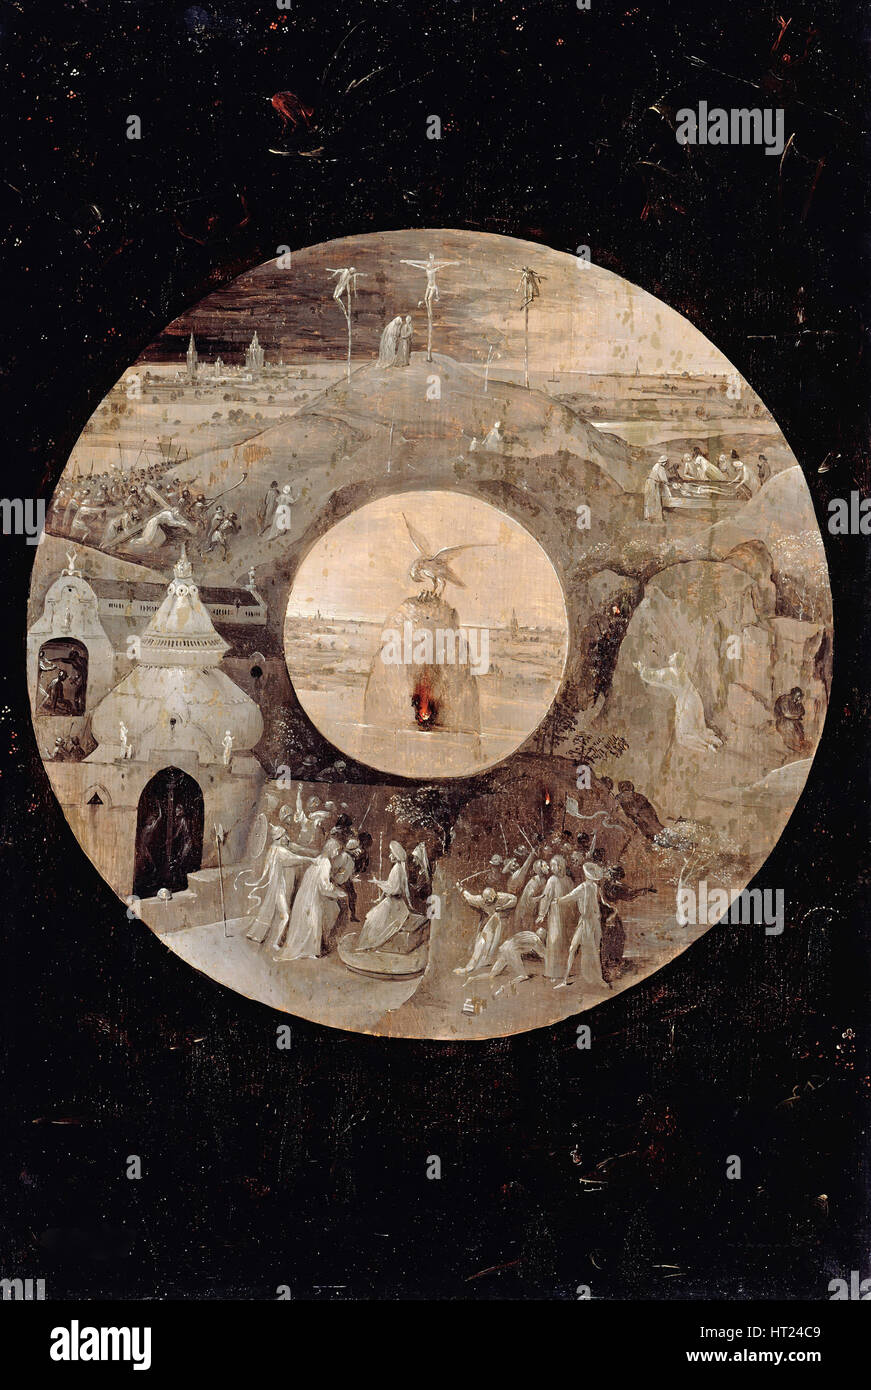 Saint John the Evangelist on Patmos (Reverse side). The Passion of the Christ, c. 1505. Artist: Bosch, Hieronymus - Stock Image